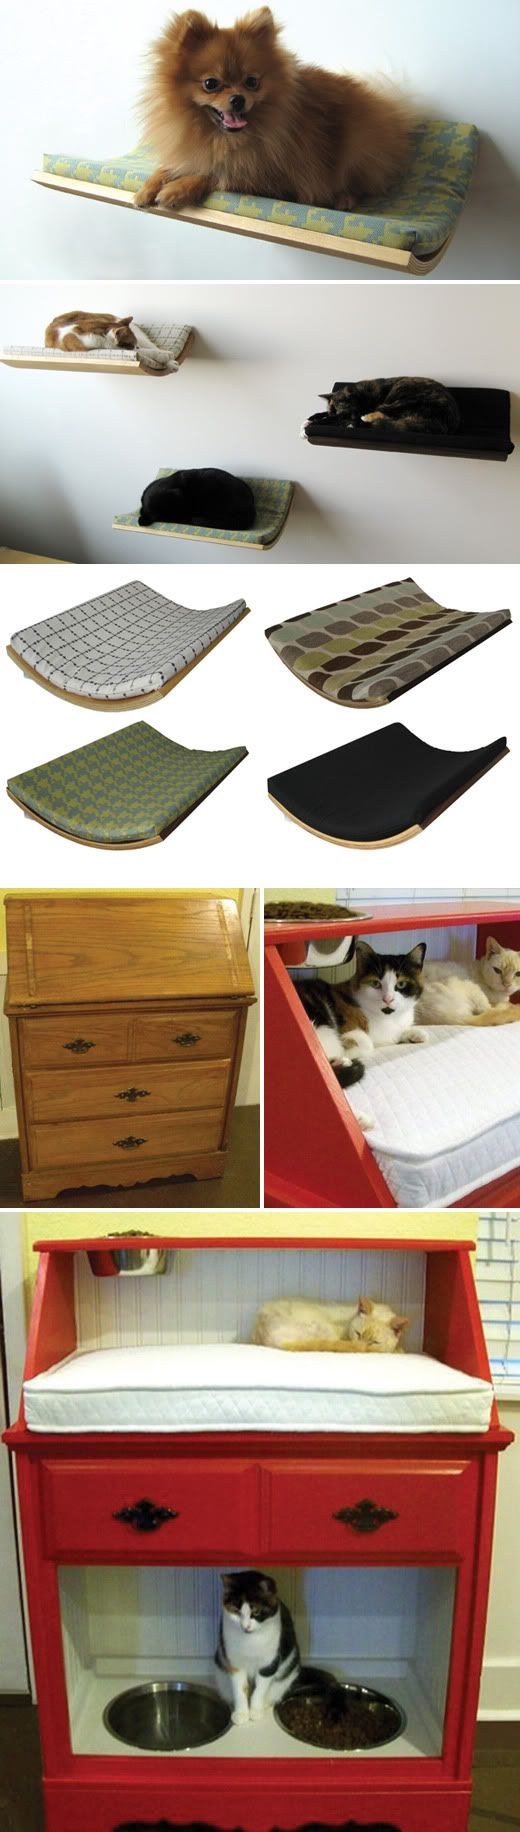 I like the dresser turned into a pet station---DIY small dog & cat beds!